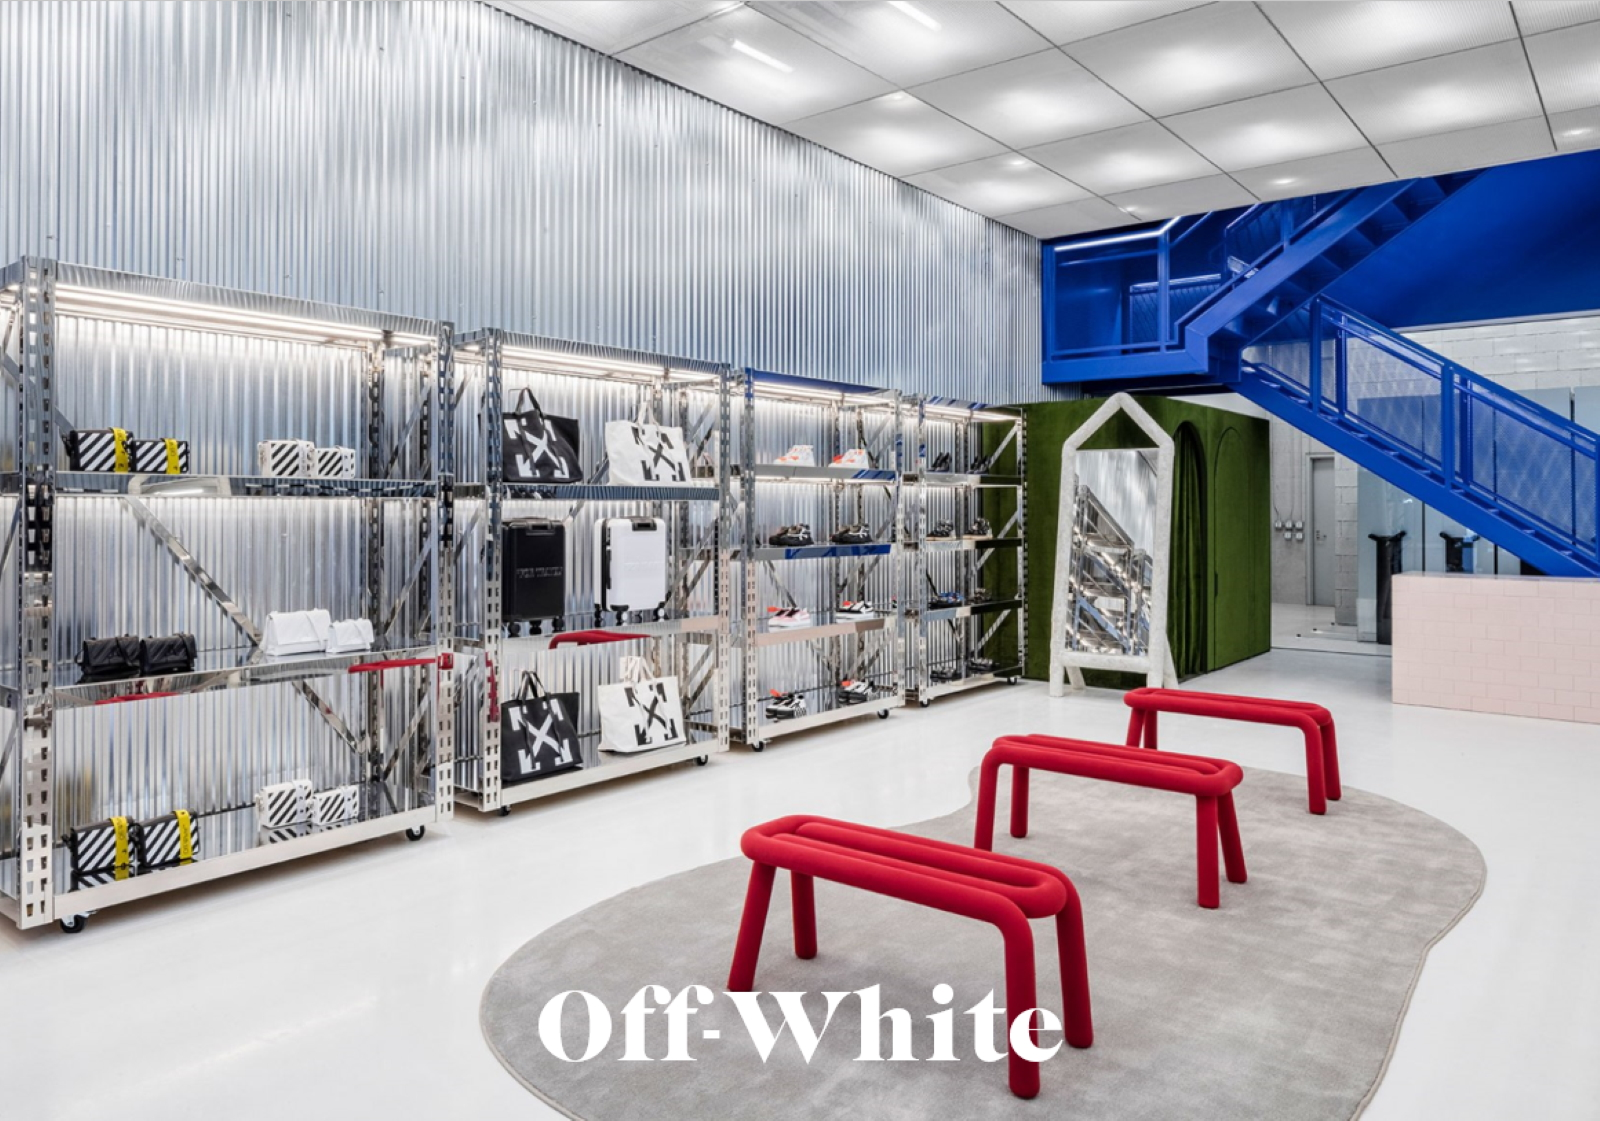 Off white retail design tour missions mmm 0